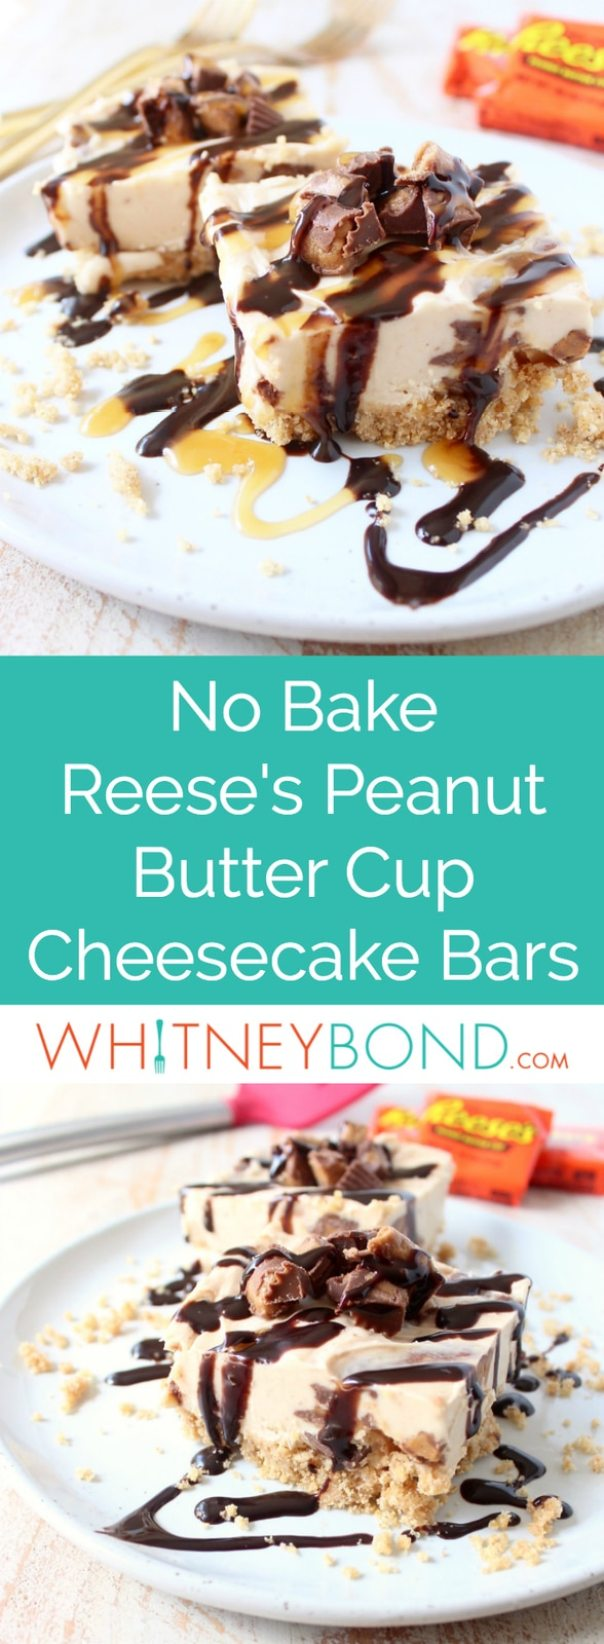 No Bake Cheesecake Bars with Reese's Peanut Butter Cup